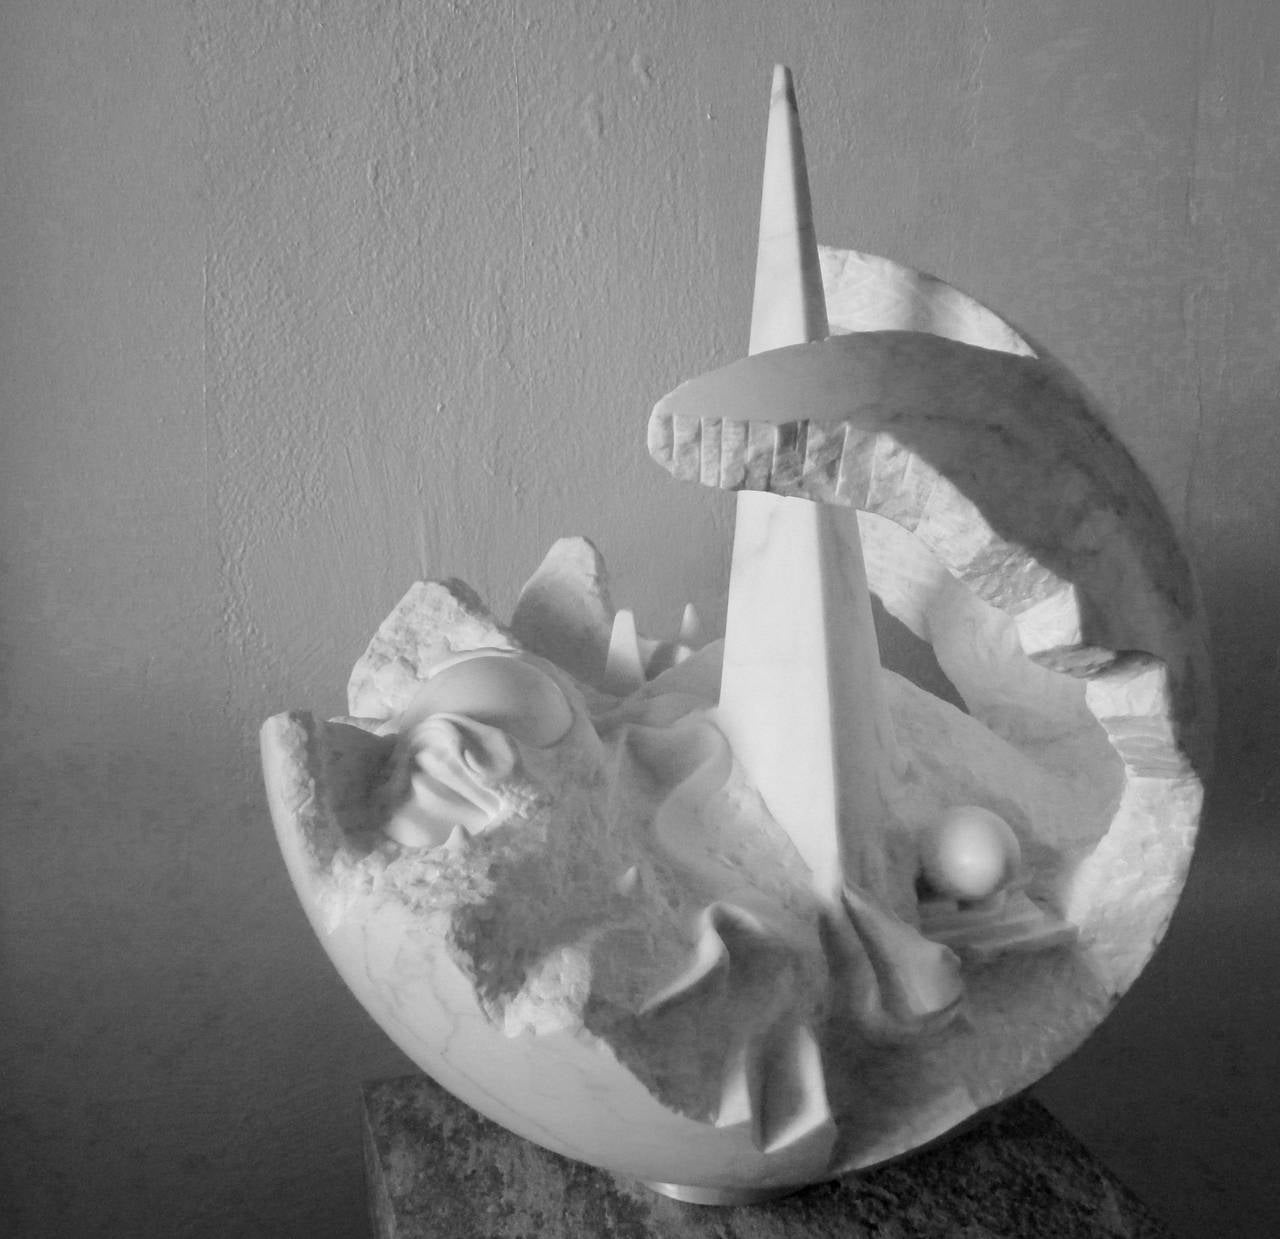 white carrara marble sculpture by jens flemming sorensen 2 - White Carrara Marble